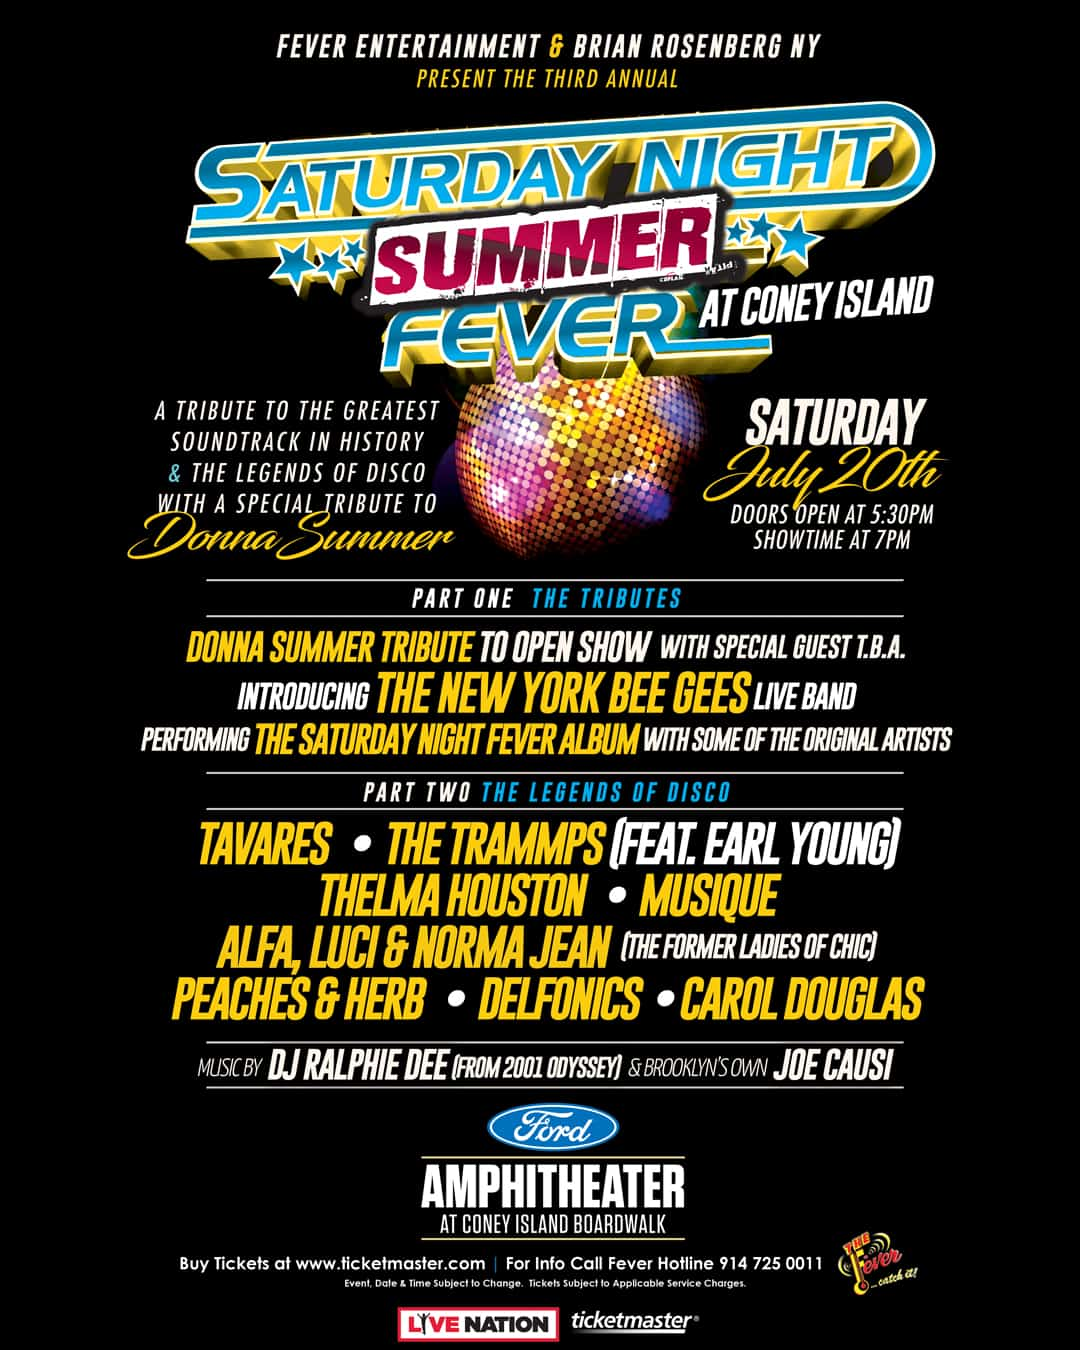 Saturday Night Summer fever artist lineup